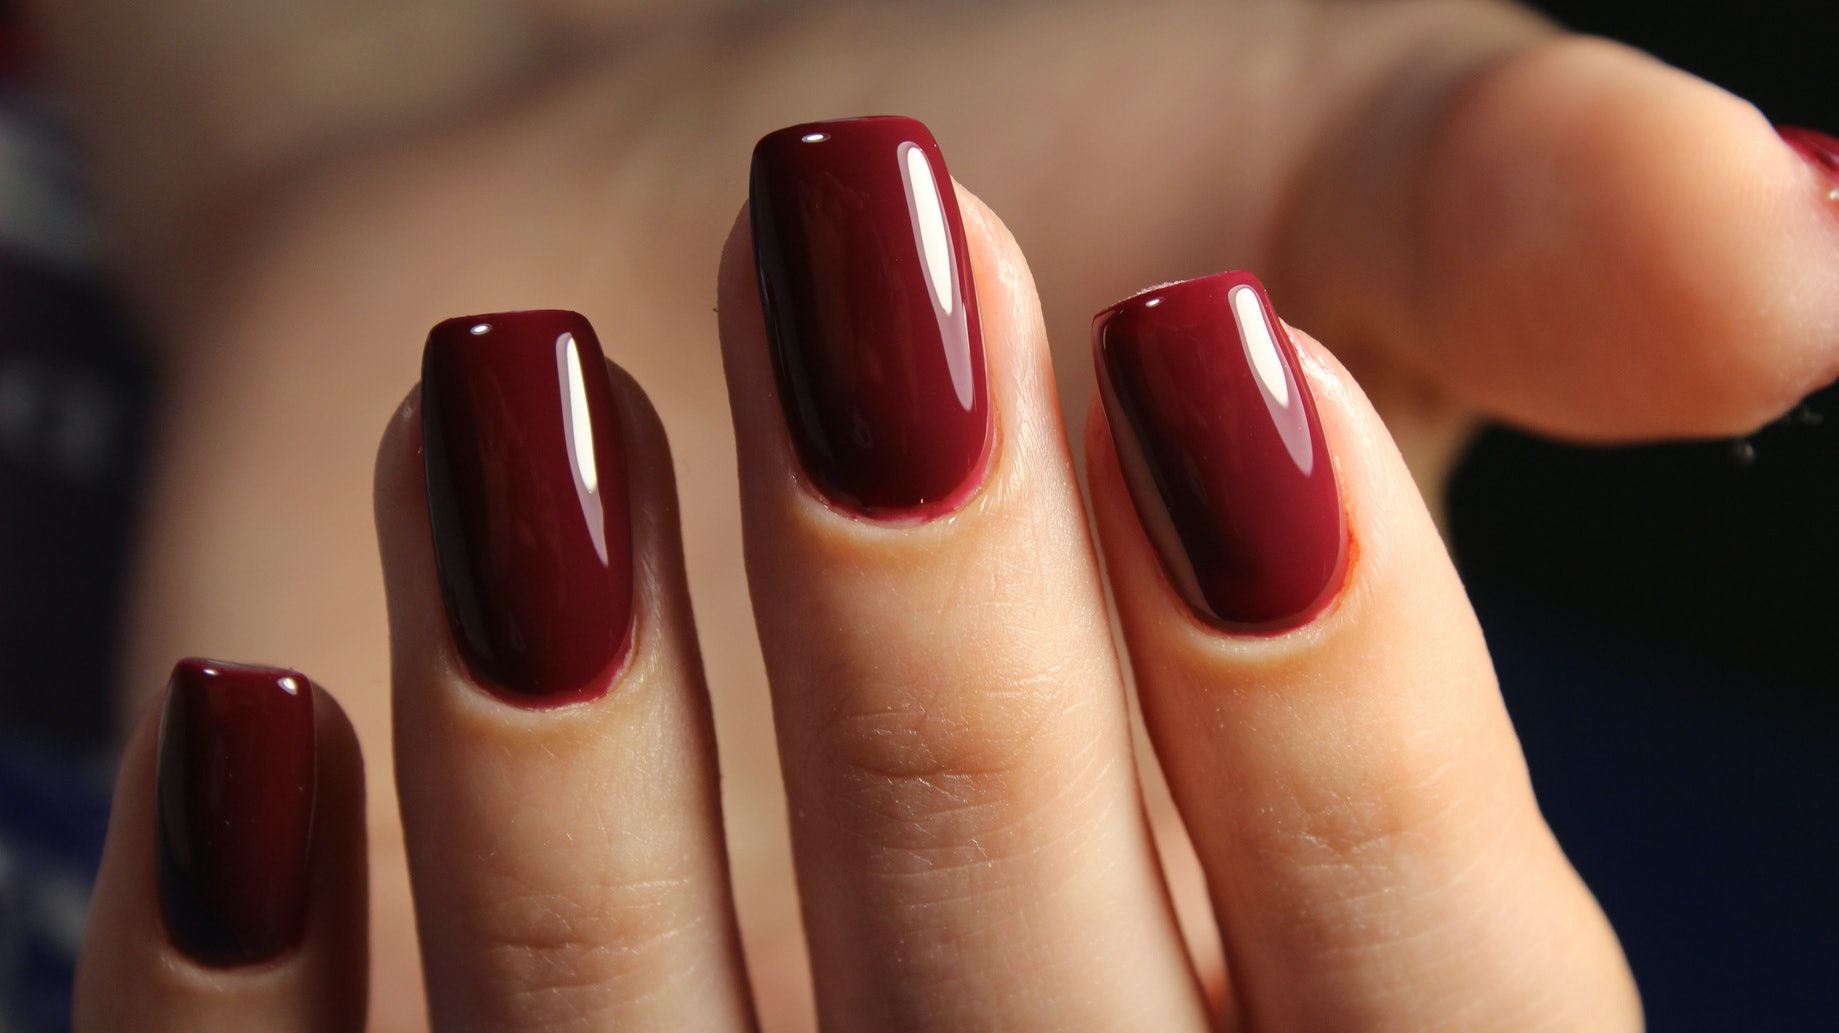 Can Nail Polish Remover Remove Gel Nails Or Do You Have To Go To A Salon?